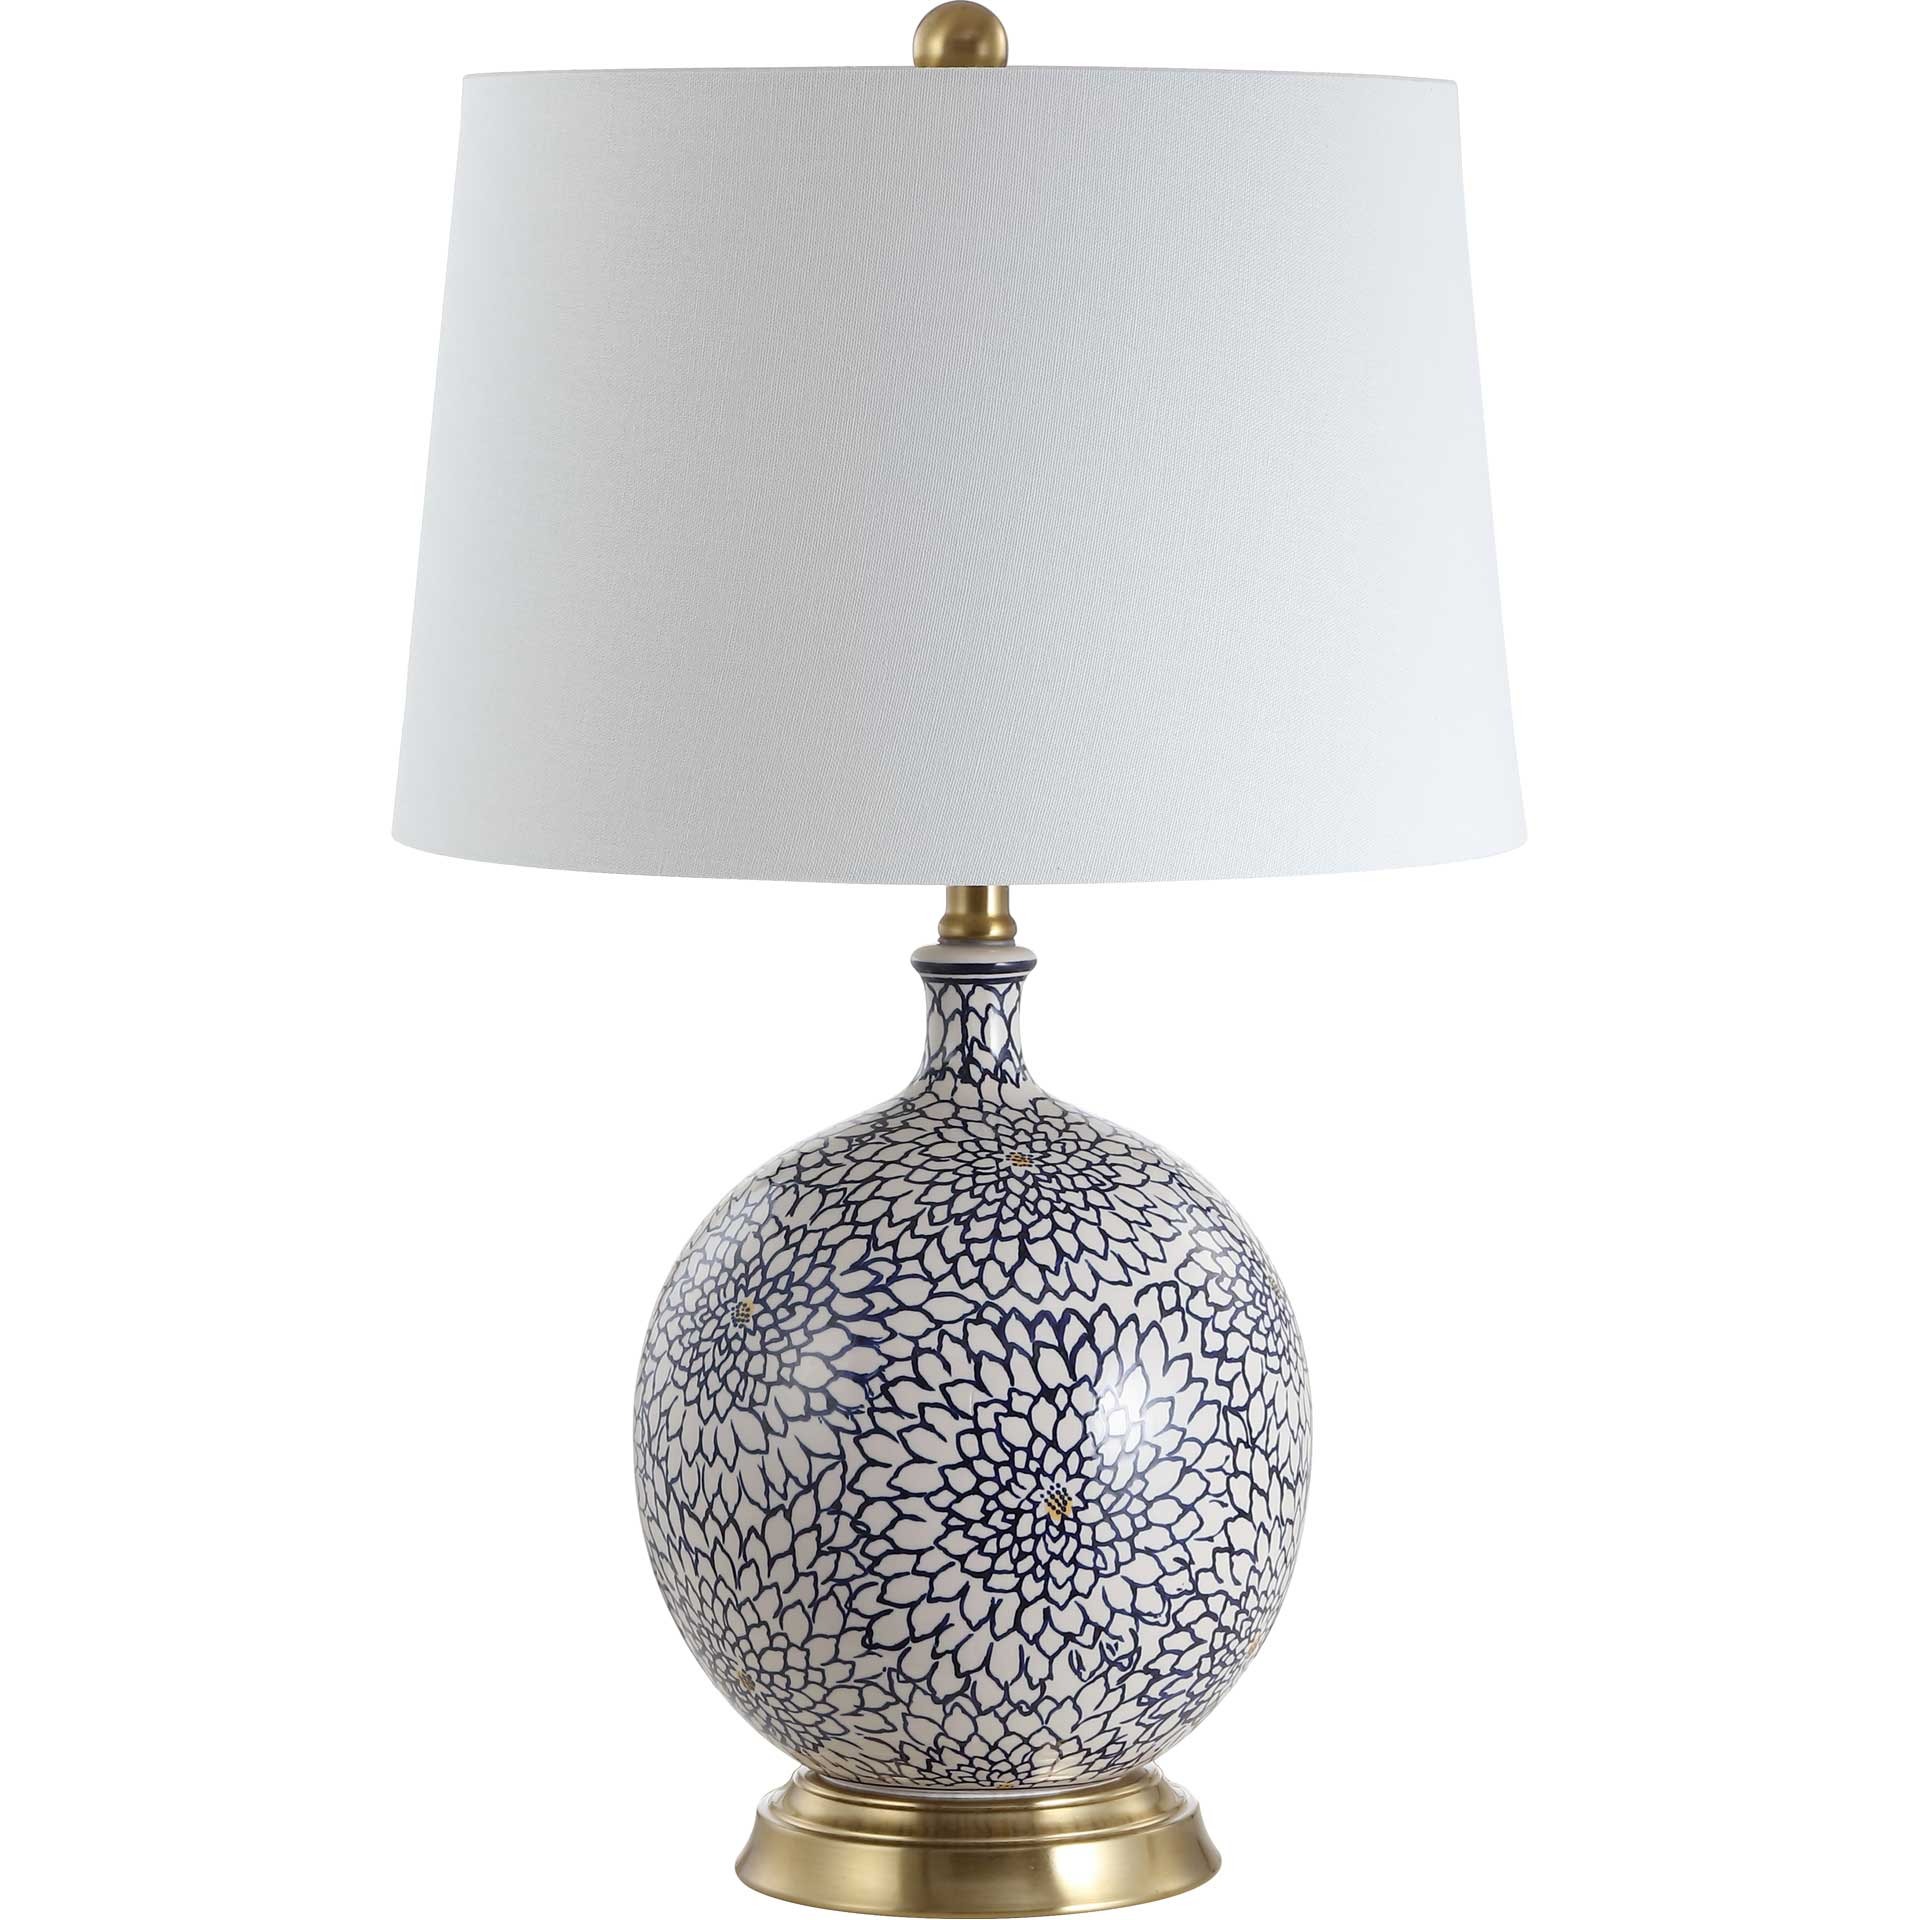 Origin Table Lamp Blue/White